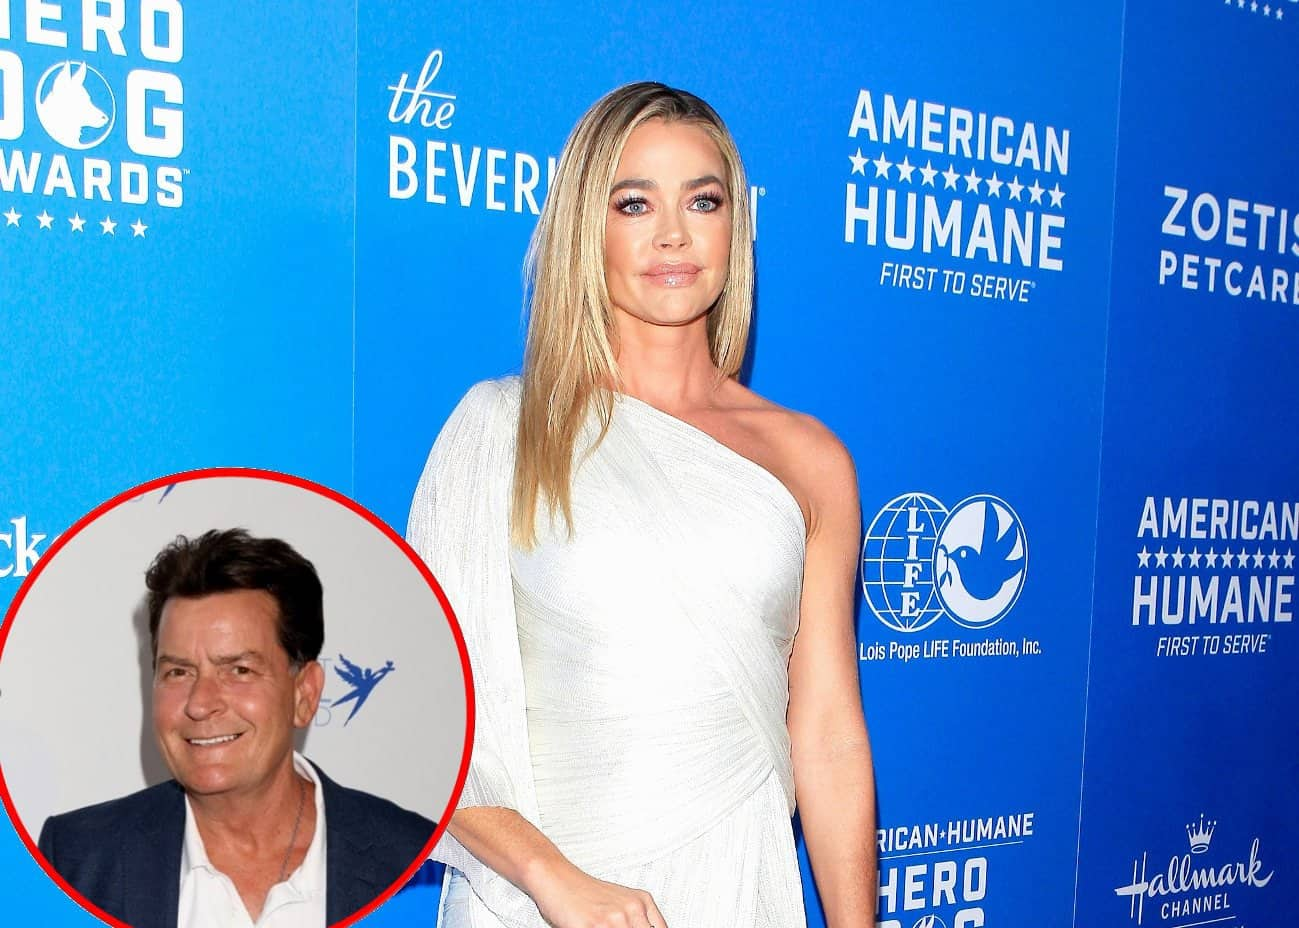 RHOBH Denise Richards Opens Up About 7-Year-Old Daughter's Special Needs, Charlie Sheen Divorce